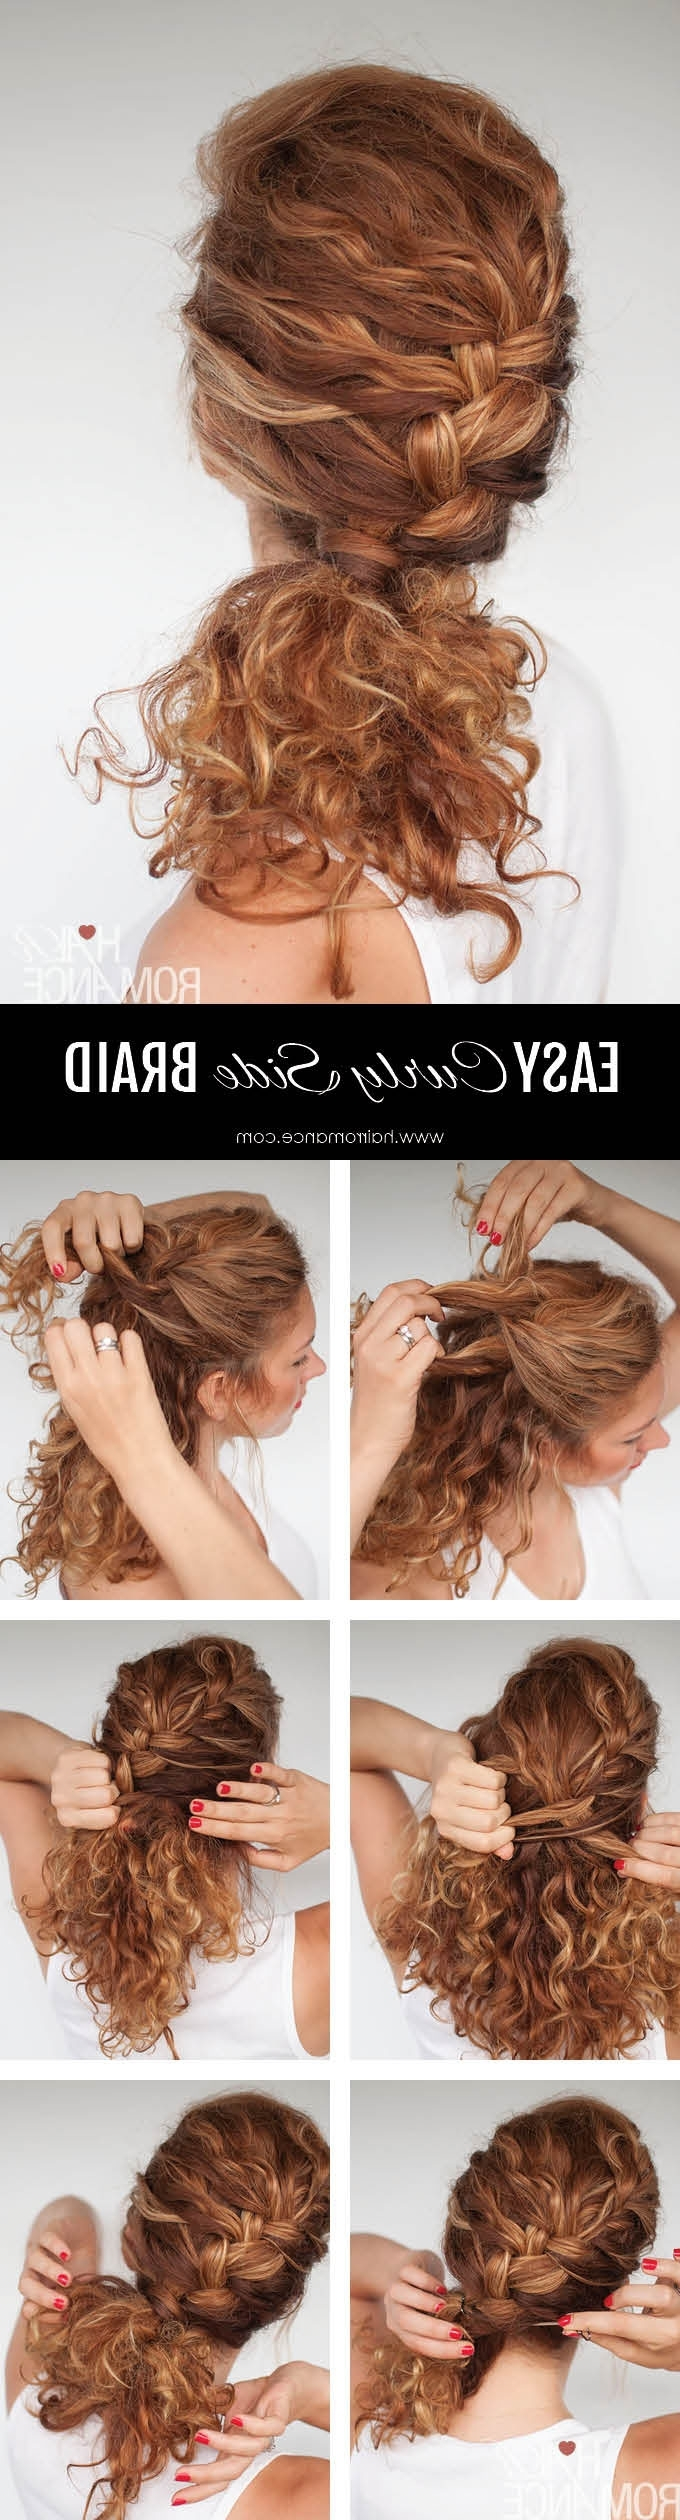 Latest Side Braid Hairstyles For Curly Ponytail With Easy Everyday Curly Hairstyle Tutorials – The Curly Side Braid (View 13 of 20)